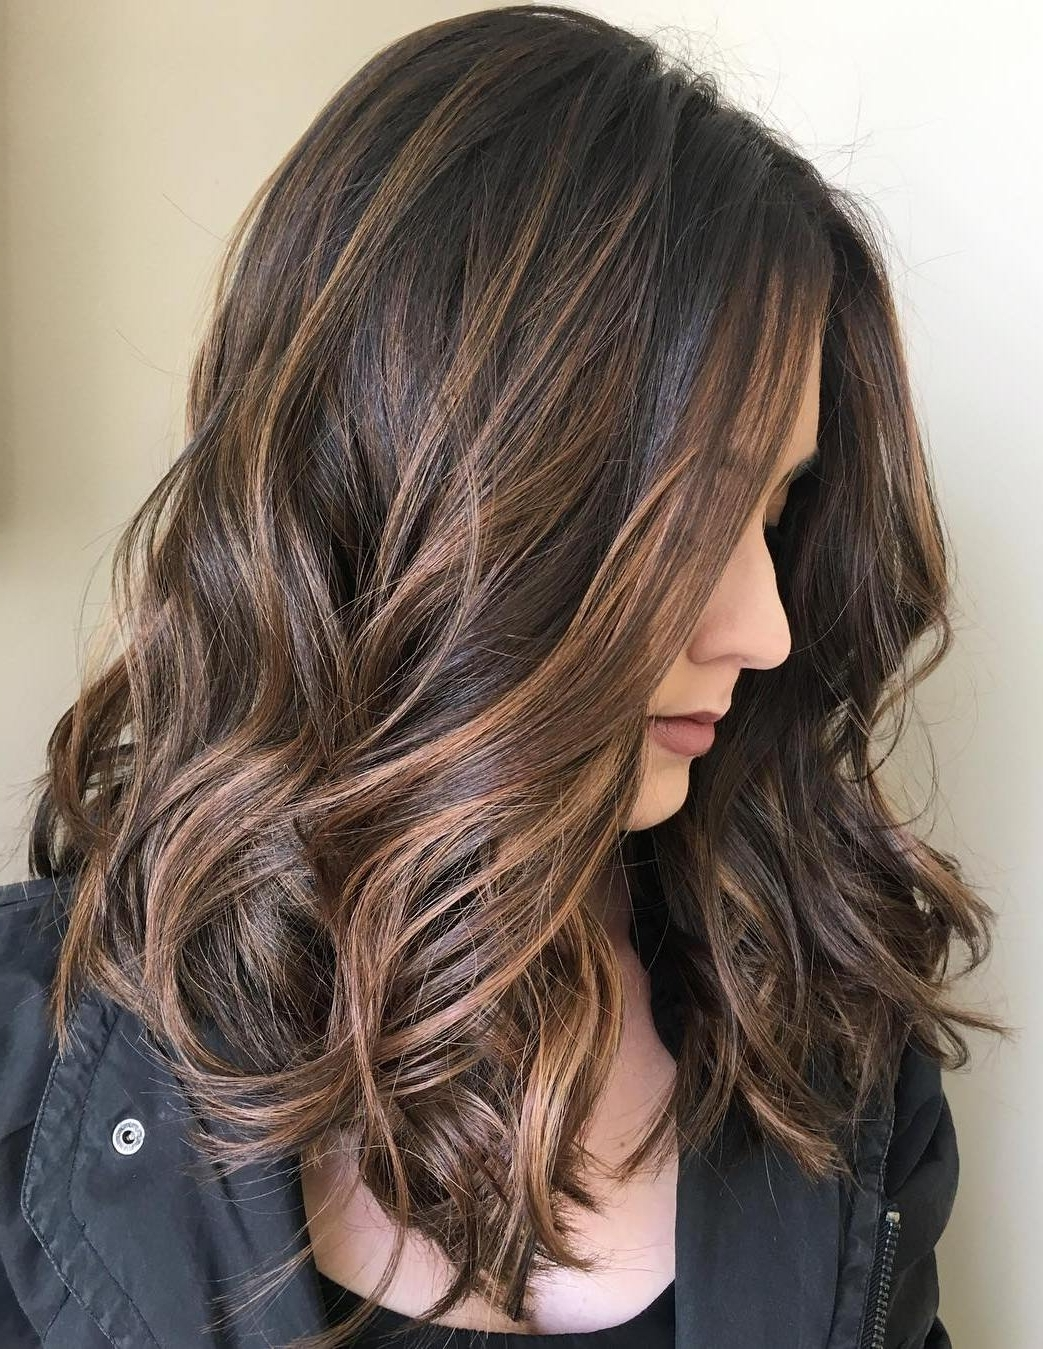 Well Known Dark Locks Blonde Hairstyles With Caramel Highlights Inside 70 Balayage Hair Color Ideas With Blonde, Brown And Caramel Highlights (View 15 of 20)